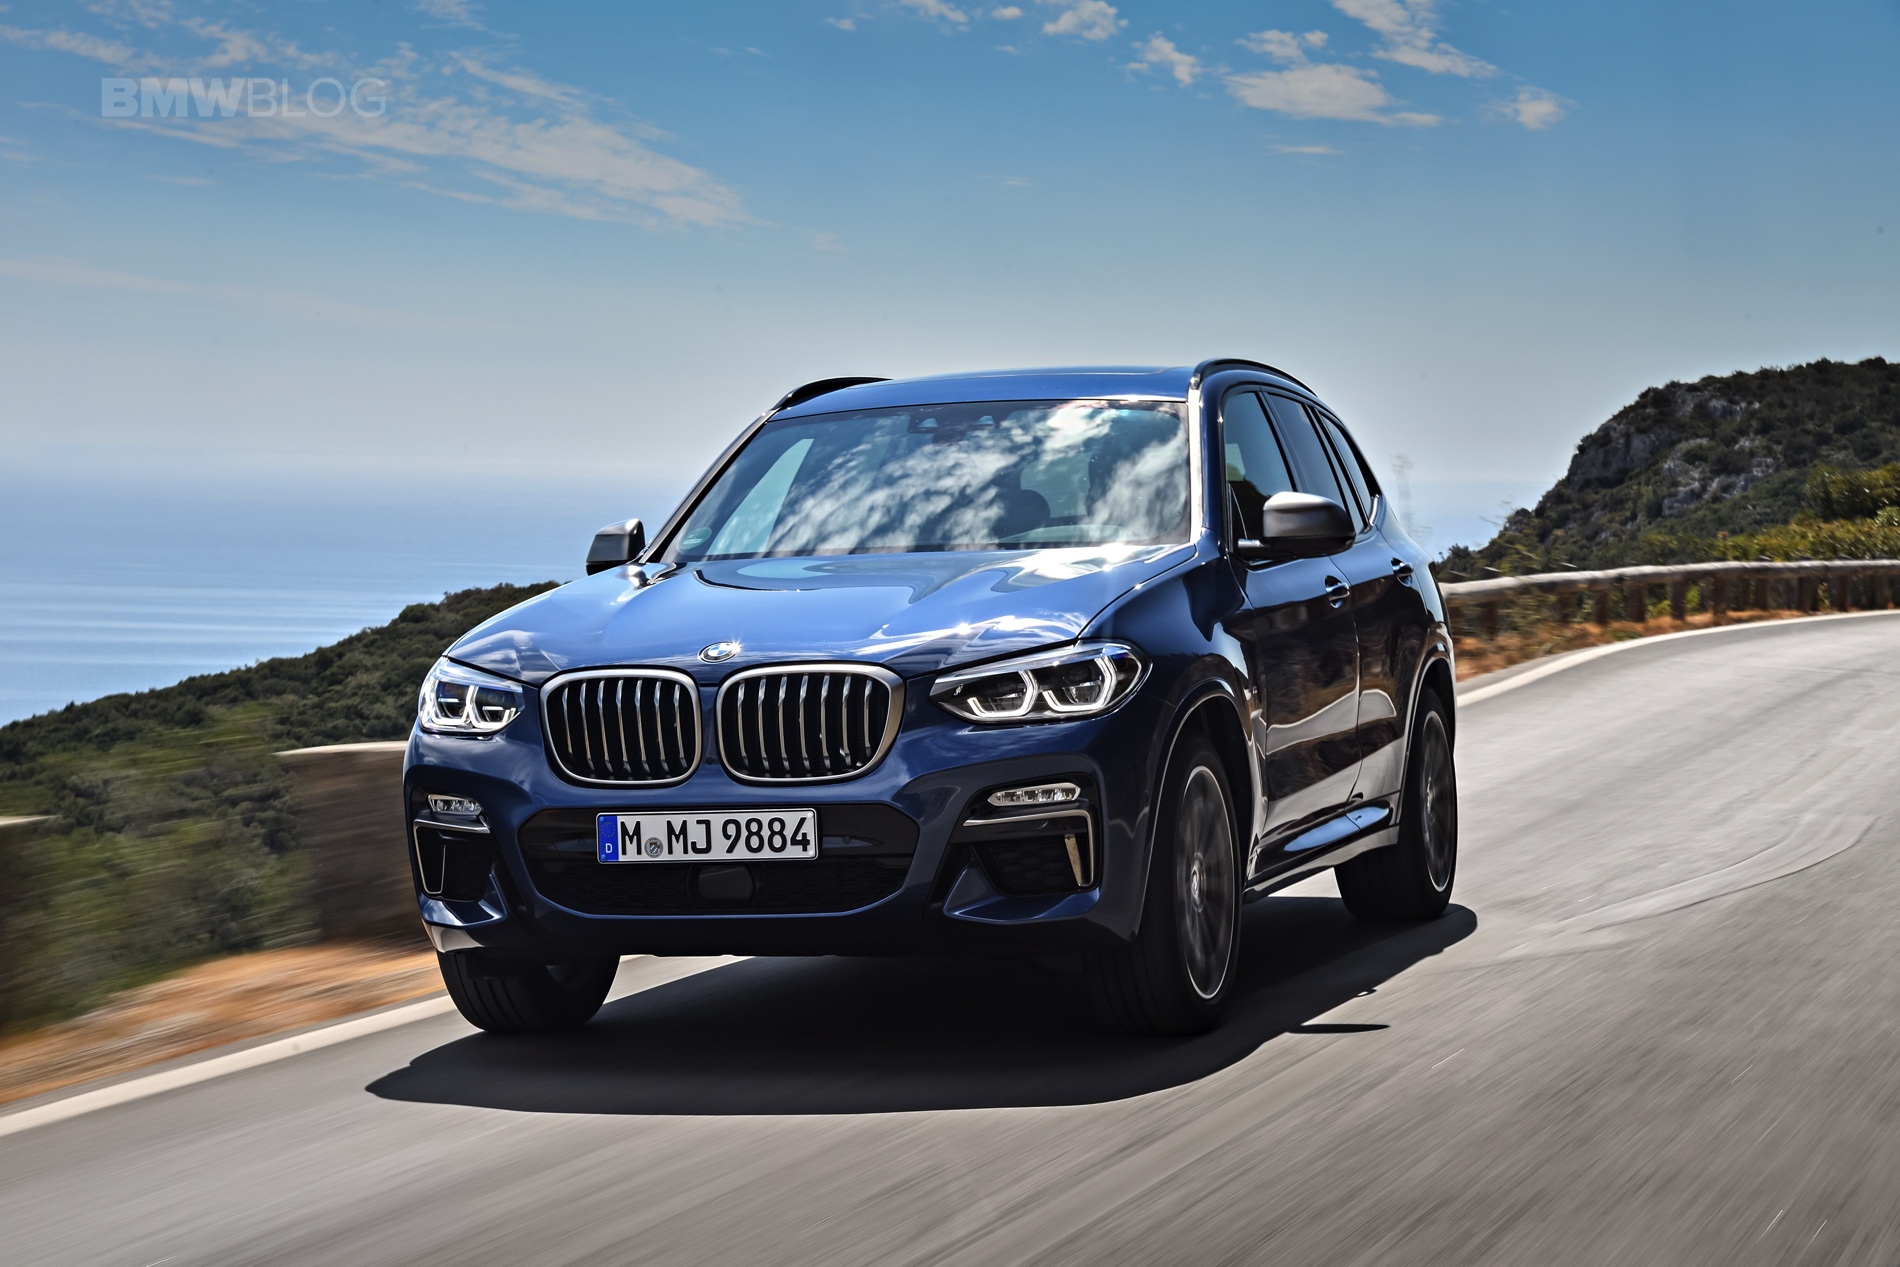 2018 BMW X3 M40i photoshoot 89